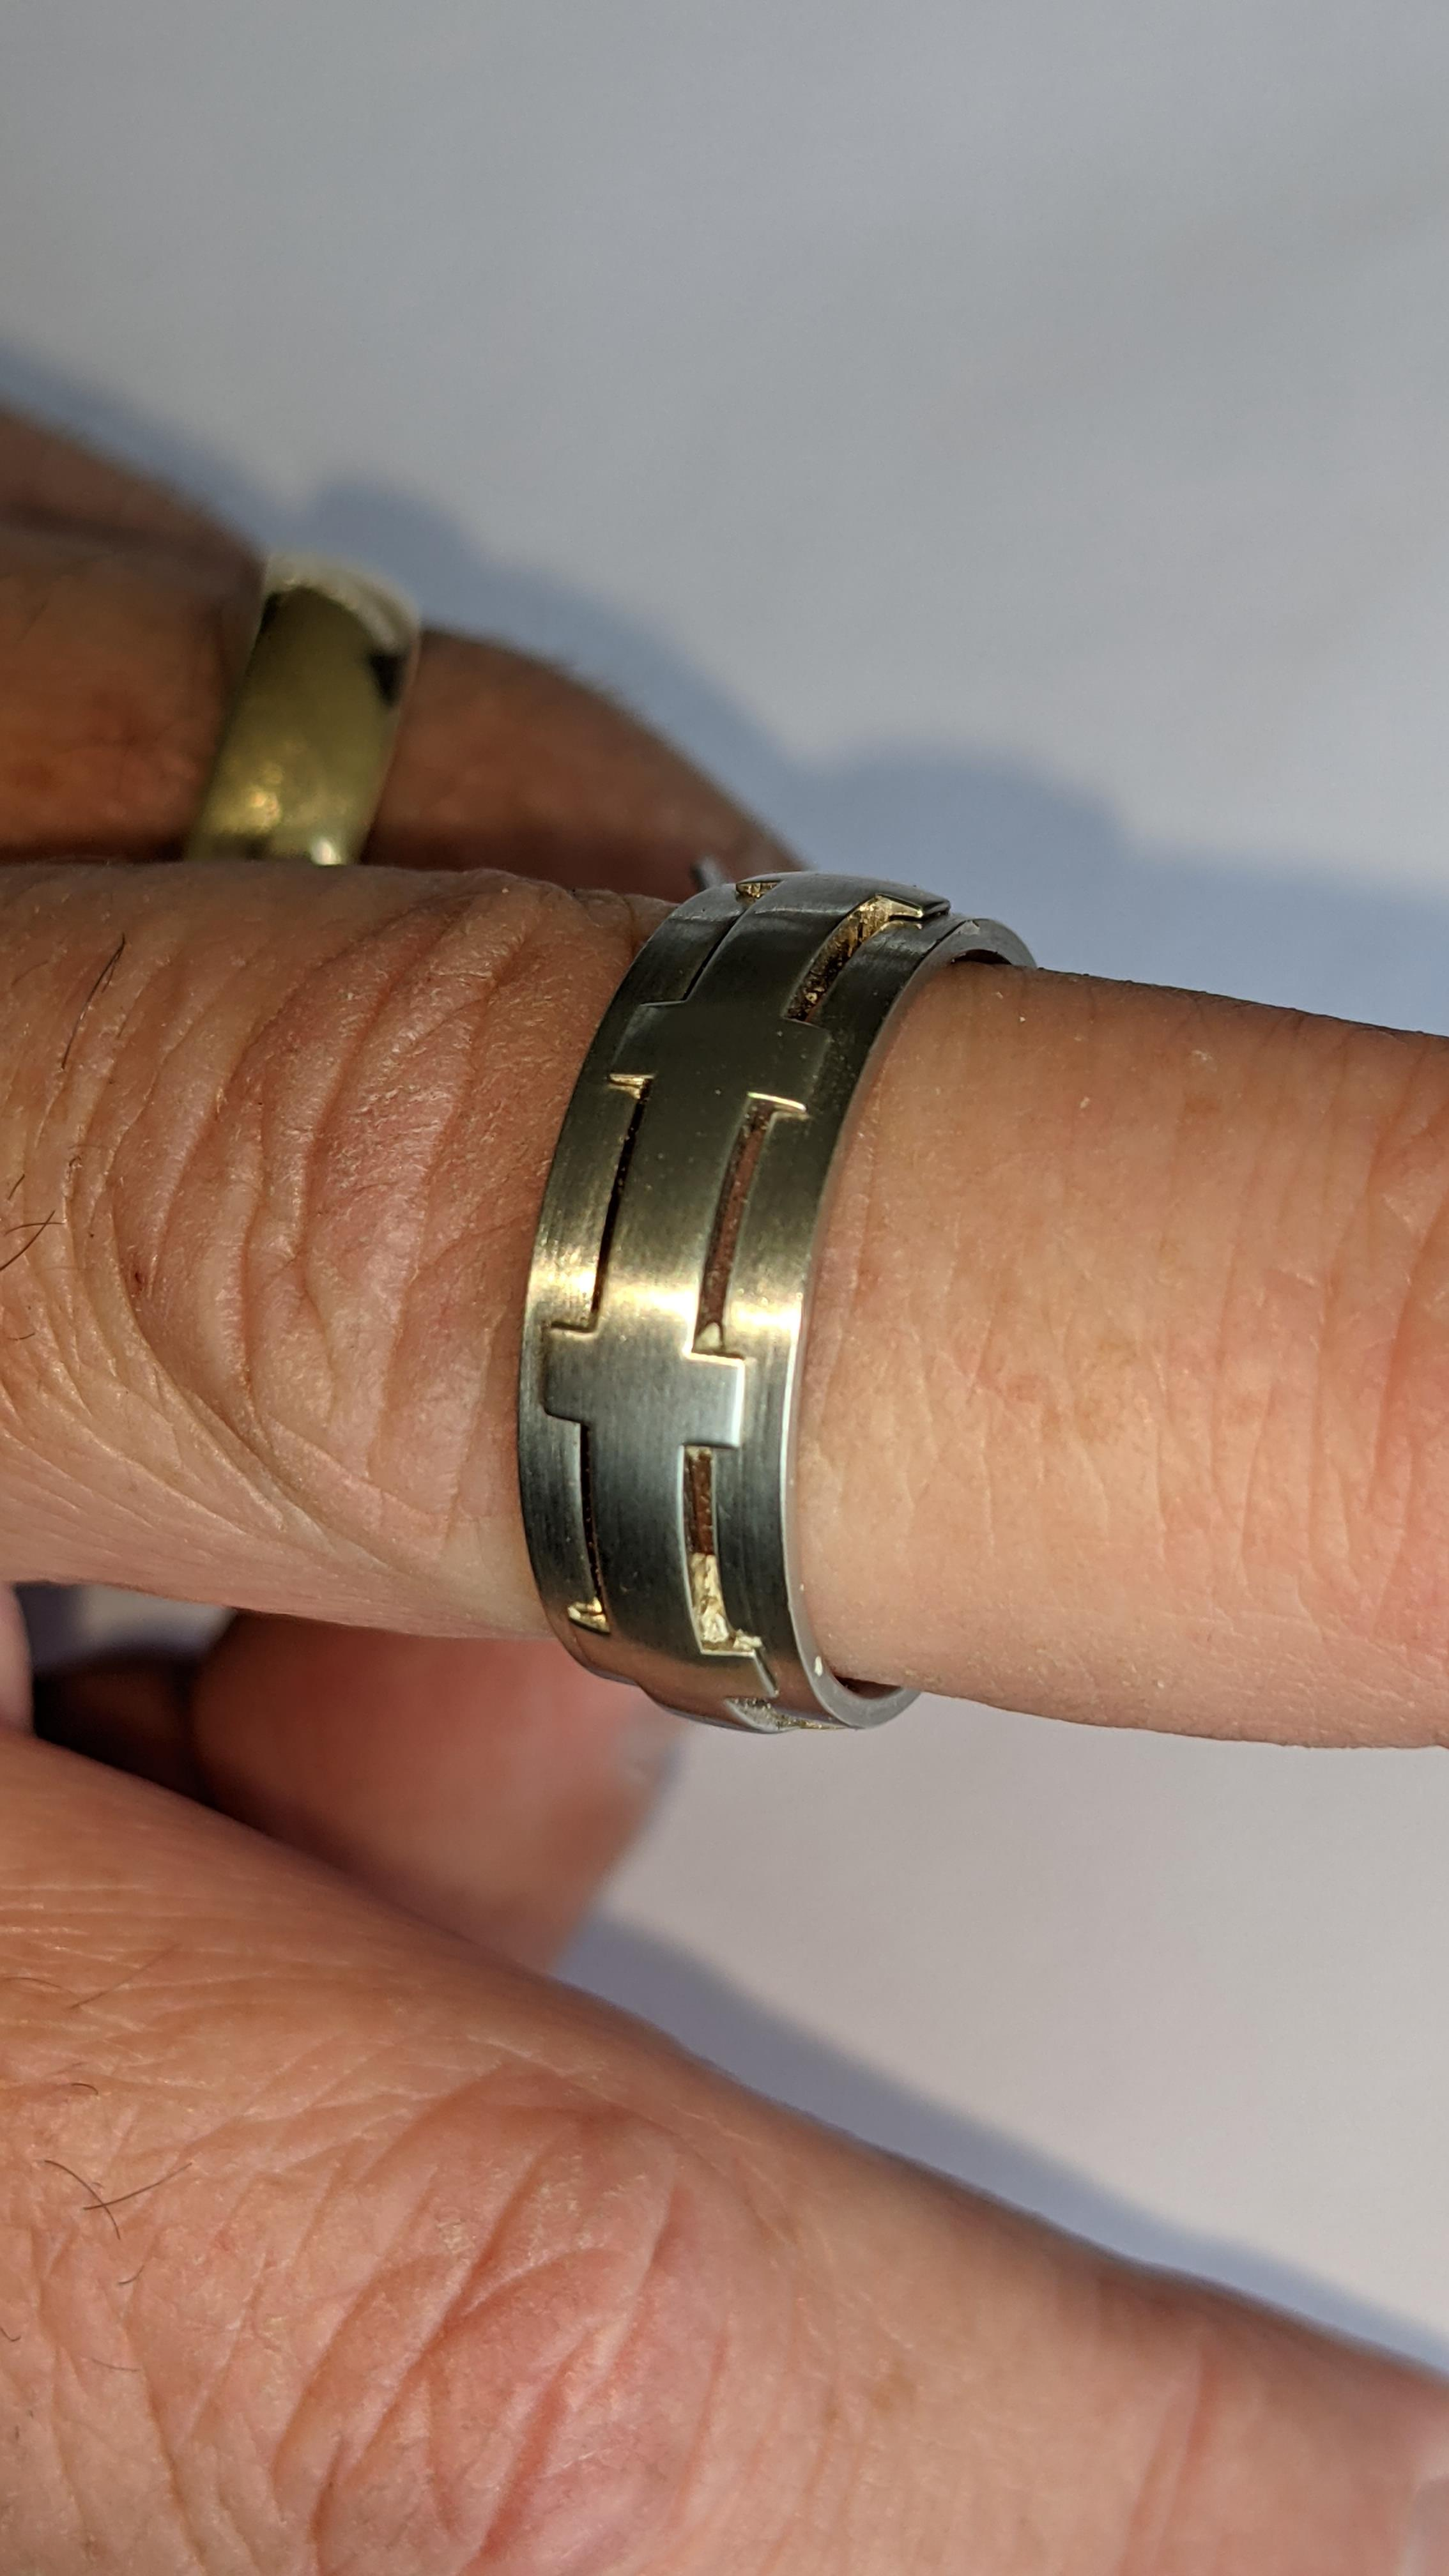 Platinum 950 ring in matt & polished finish, 7.5mm wide. RRP £2,960 - Image 15 of 15